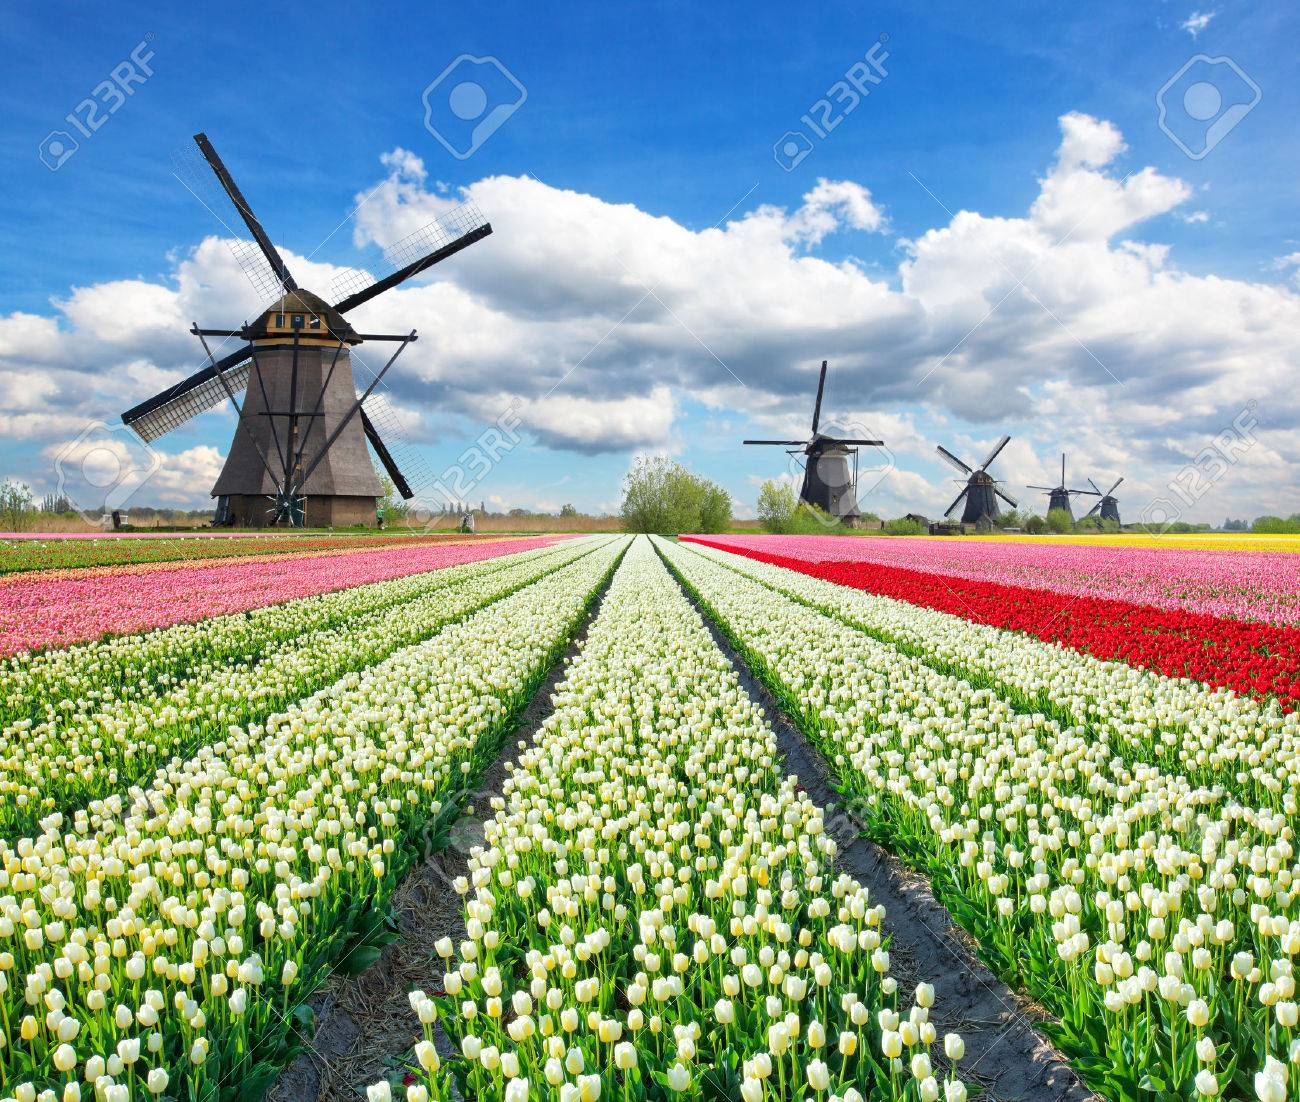 Vibrant tulips field with Dutch windmills, Netherlands. Beautiful cloudy sky - 50529129